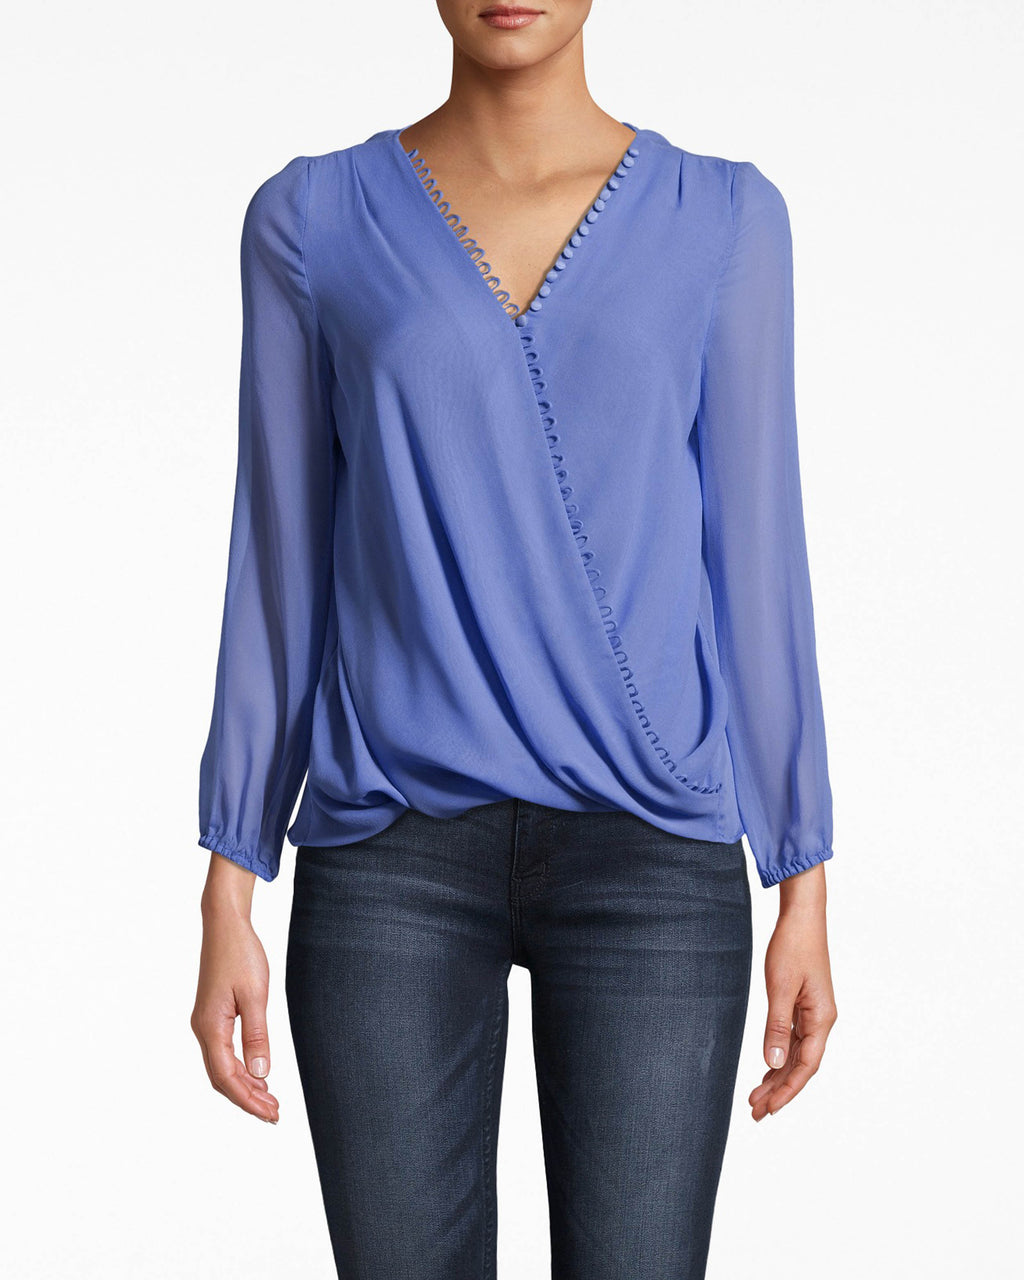 BJ10215 - Solid Silk Long Sleeve Blouse with Button Loops - tops - blouses - THIS RELAXED STYLE HAS A FAUX WRAP BODY AND BUTTON DETAILING FOR TEXTURE. THIS BRA FRIENDLY TOP HAS SHEER LONG SLEEVES AND IS CRAFTED IN LIGHTWEIGHT SILK. Add 1 line break STYLIST TIP: WEAR WITH JEANS AND SIMPLE JEWELRY.